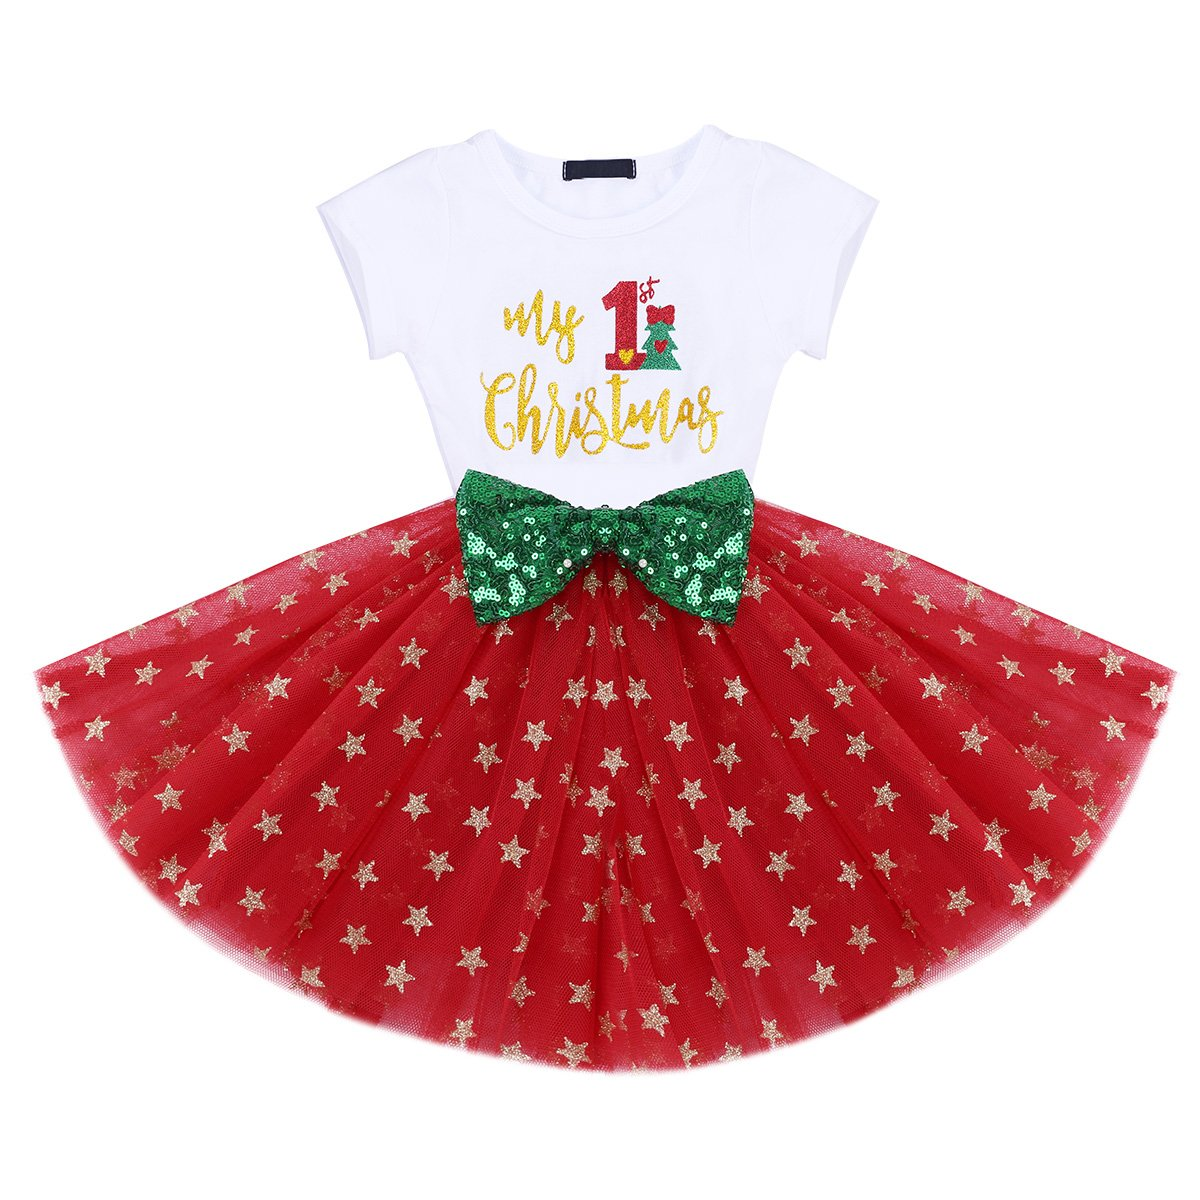 IBTOM CASTLE Baby Girls Newborn It's My 1st/2nd Birthday Cake Smash Shinny Printed Sequin Bow Tutu Princess Dress